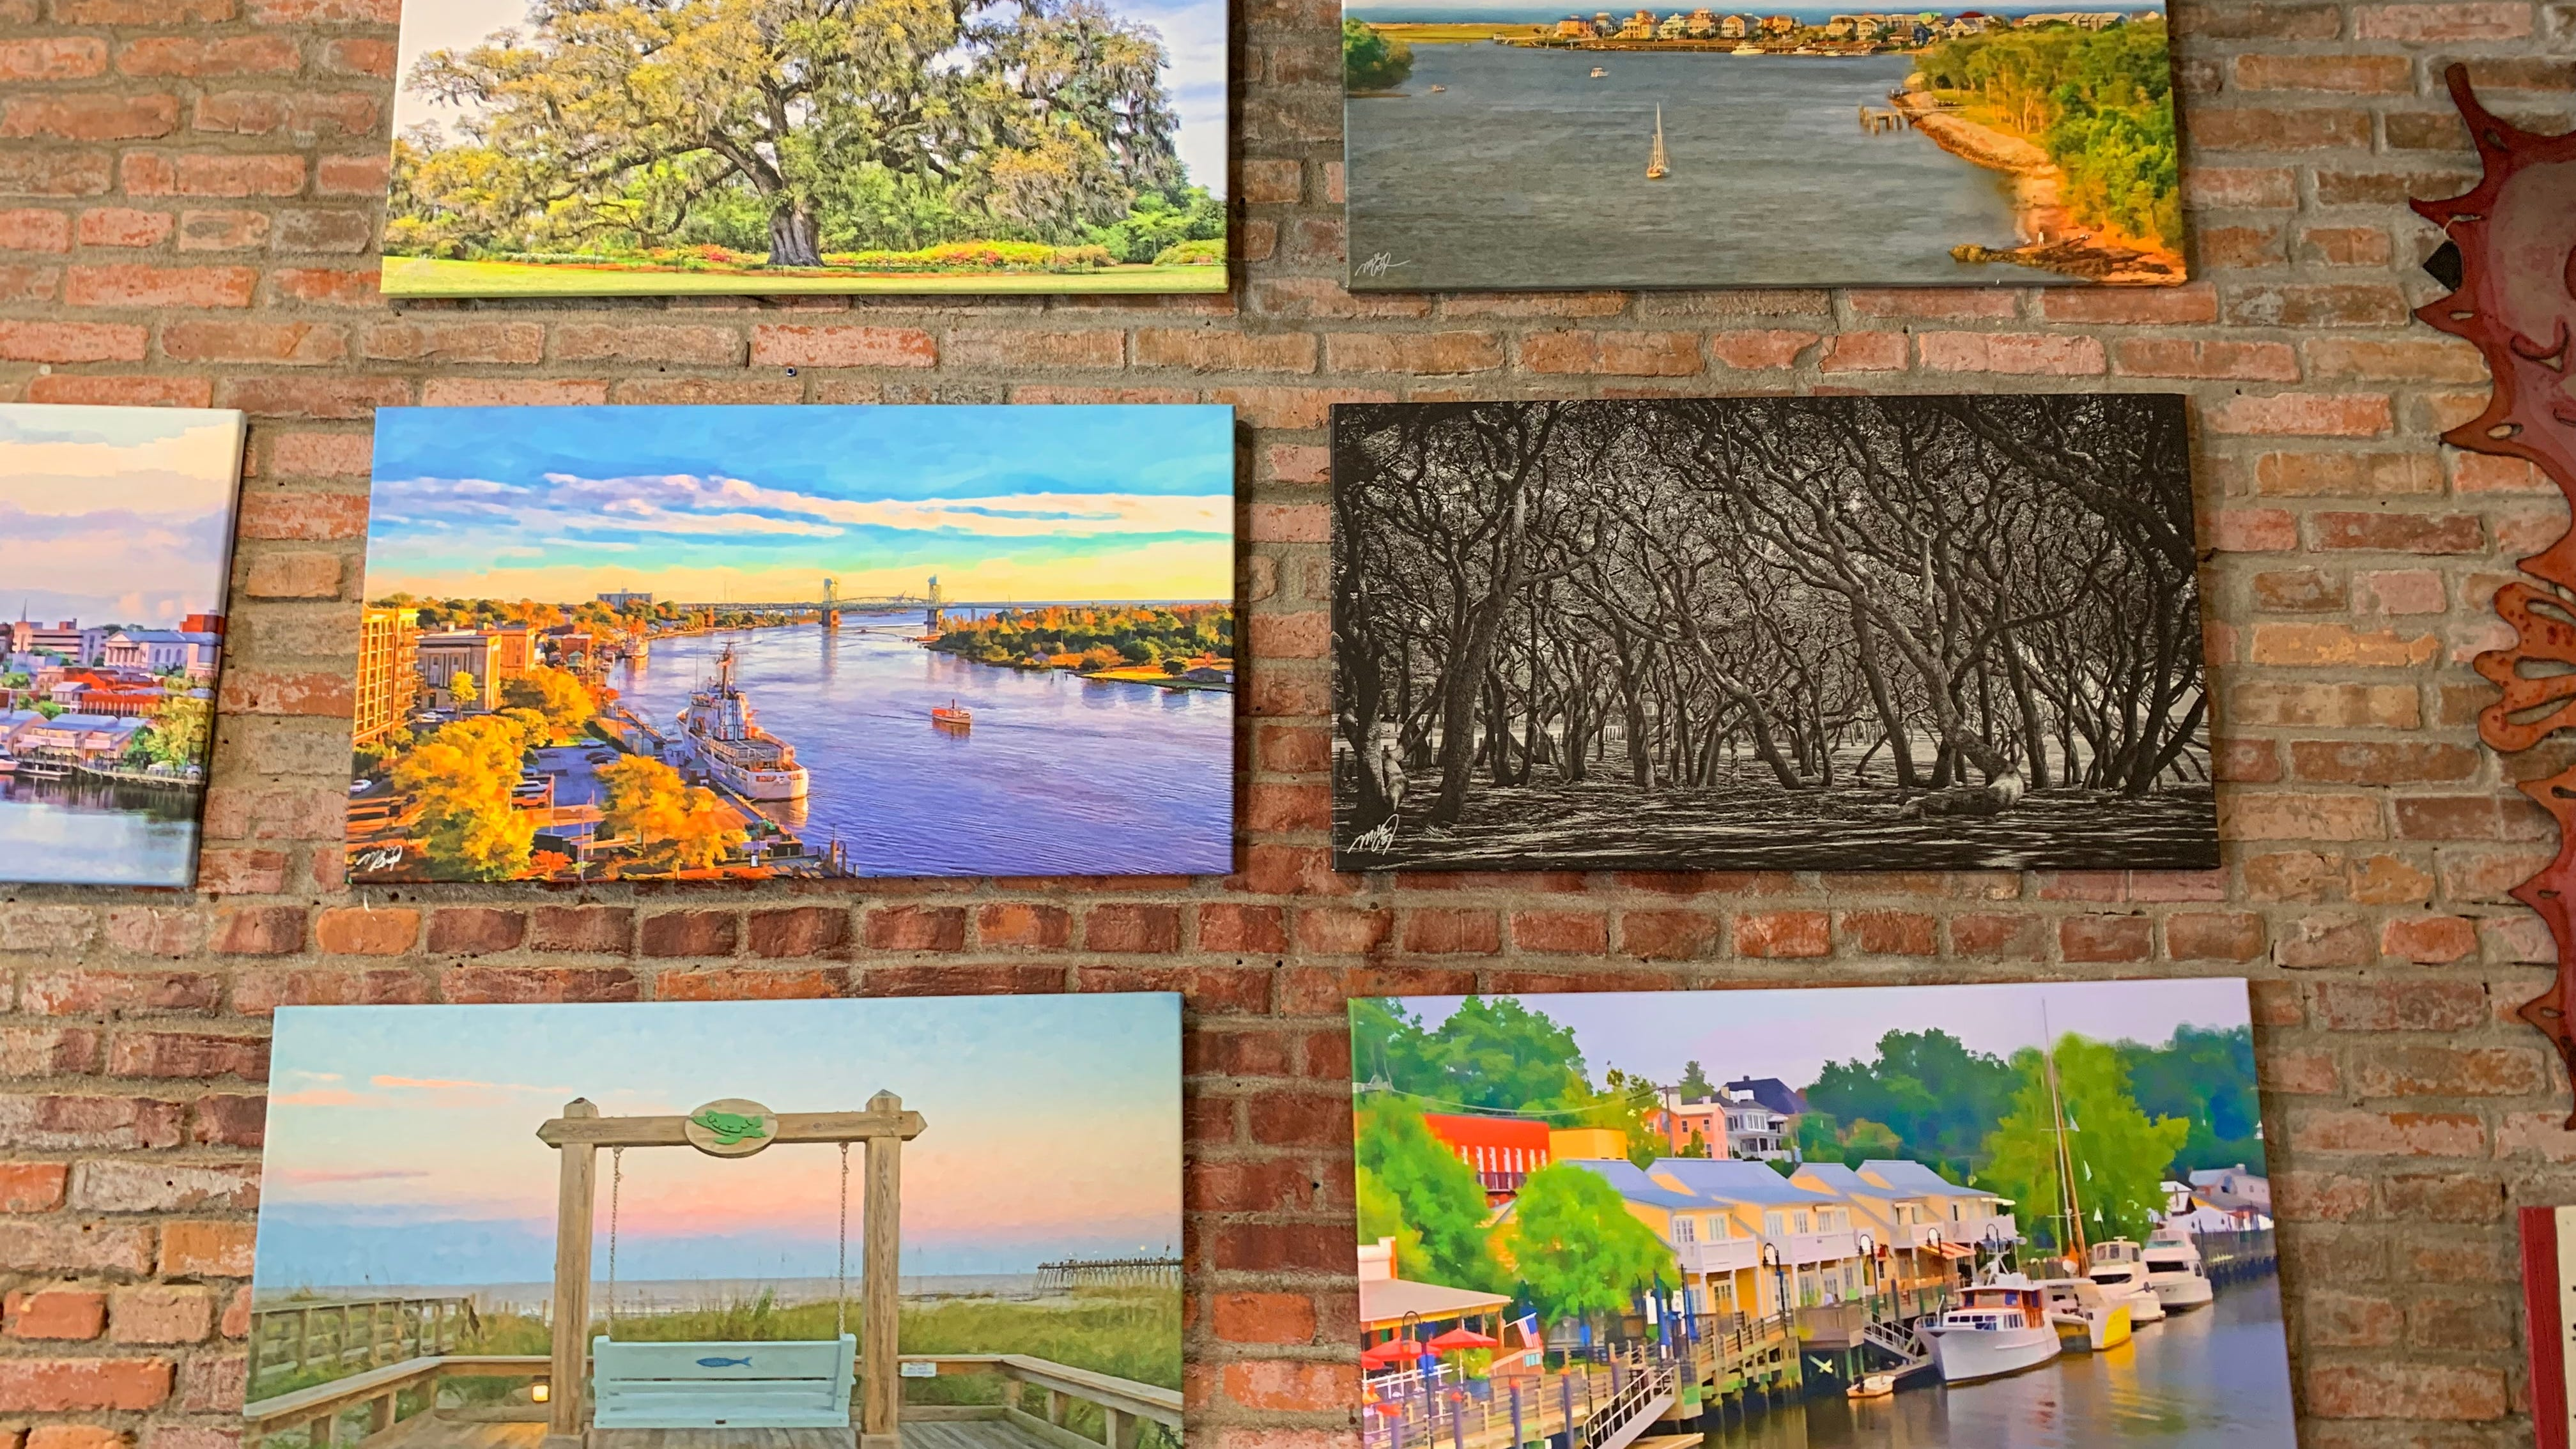 The Bryand Gallery offers artwork of local scenes. Created by Mike Bryand, the gallery offers products from more than 50 local and North Carolina artists.